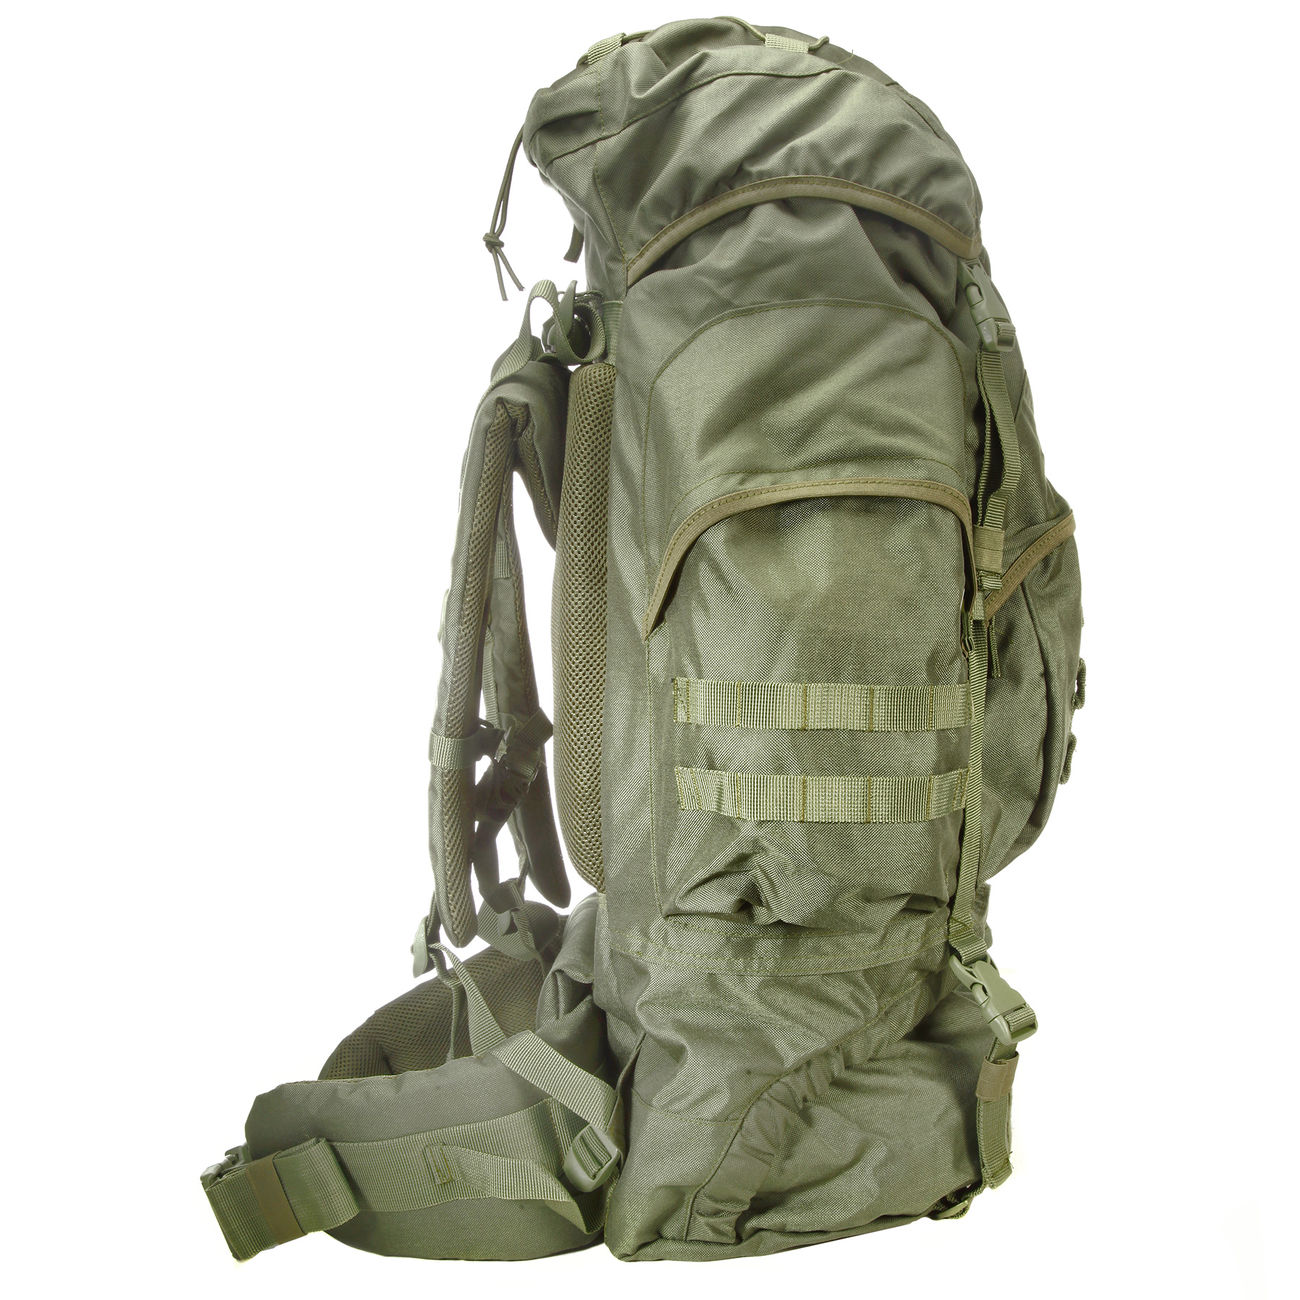 Highlander Rucksack Modell New Forces 66 Liter oliv 2